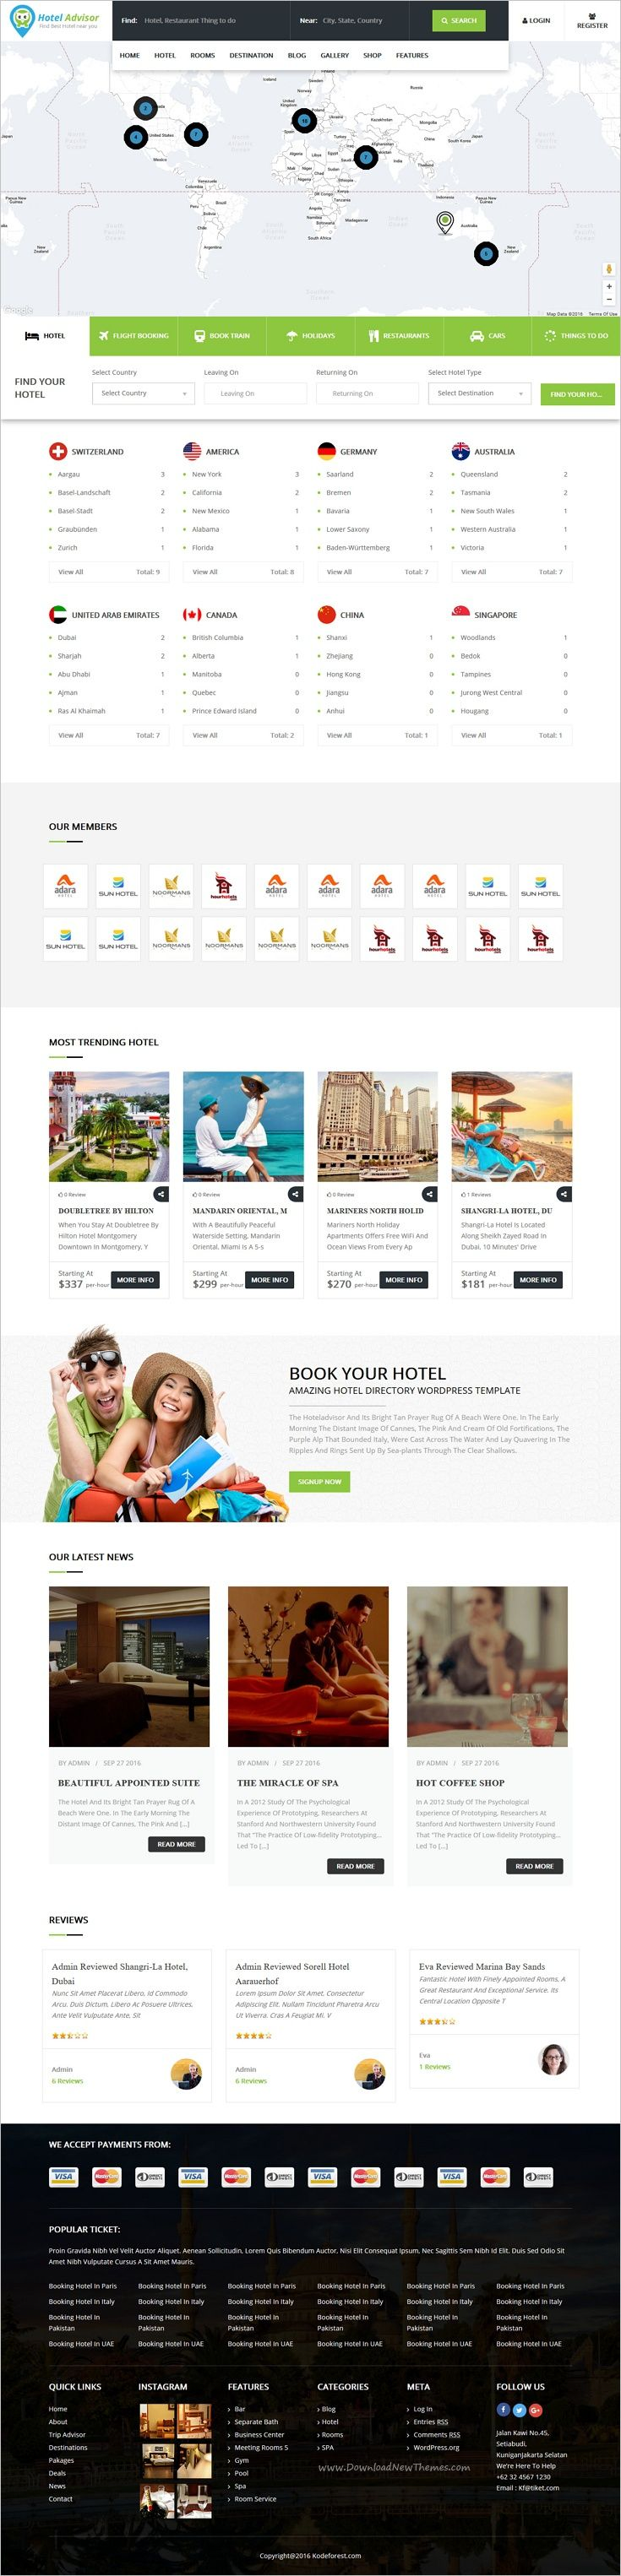 Hotel Advisor is a clean and modern design 6 in 1 #WordPress theme to manage #hotels, hostels, resorts, rooms #reservation with in depth review and booking management system website download now➩  https://themeforest.net/item/hotel-advisor-hotel-management-and-booking-wordpress-theme/18435488?ref=Datasata